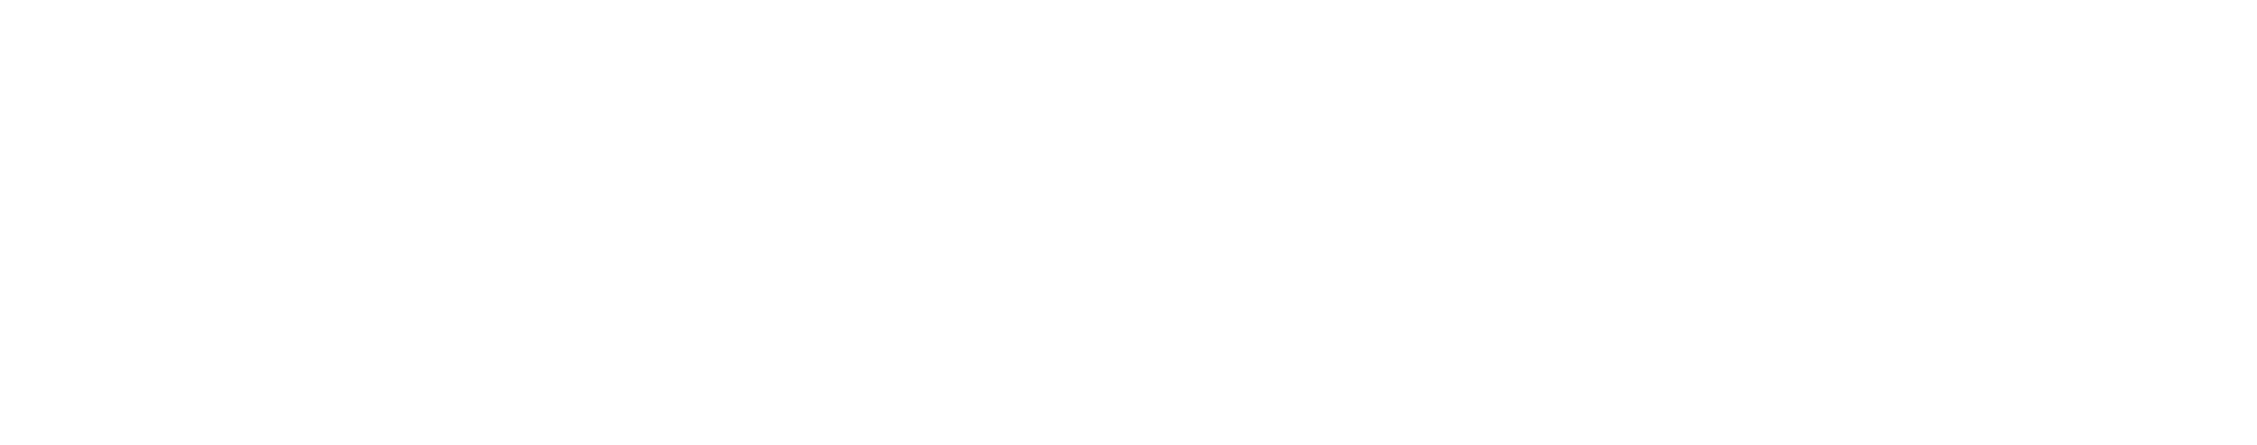 The Farm Business Innovation Show logo